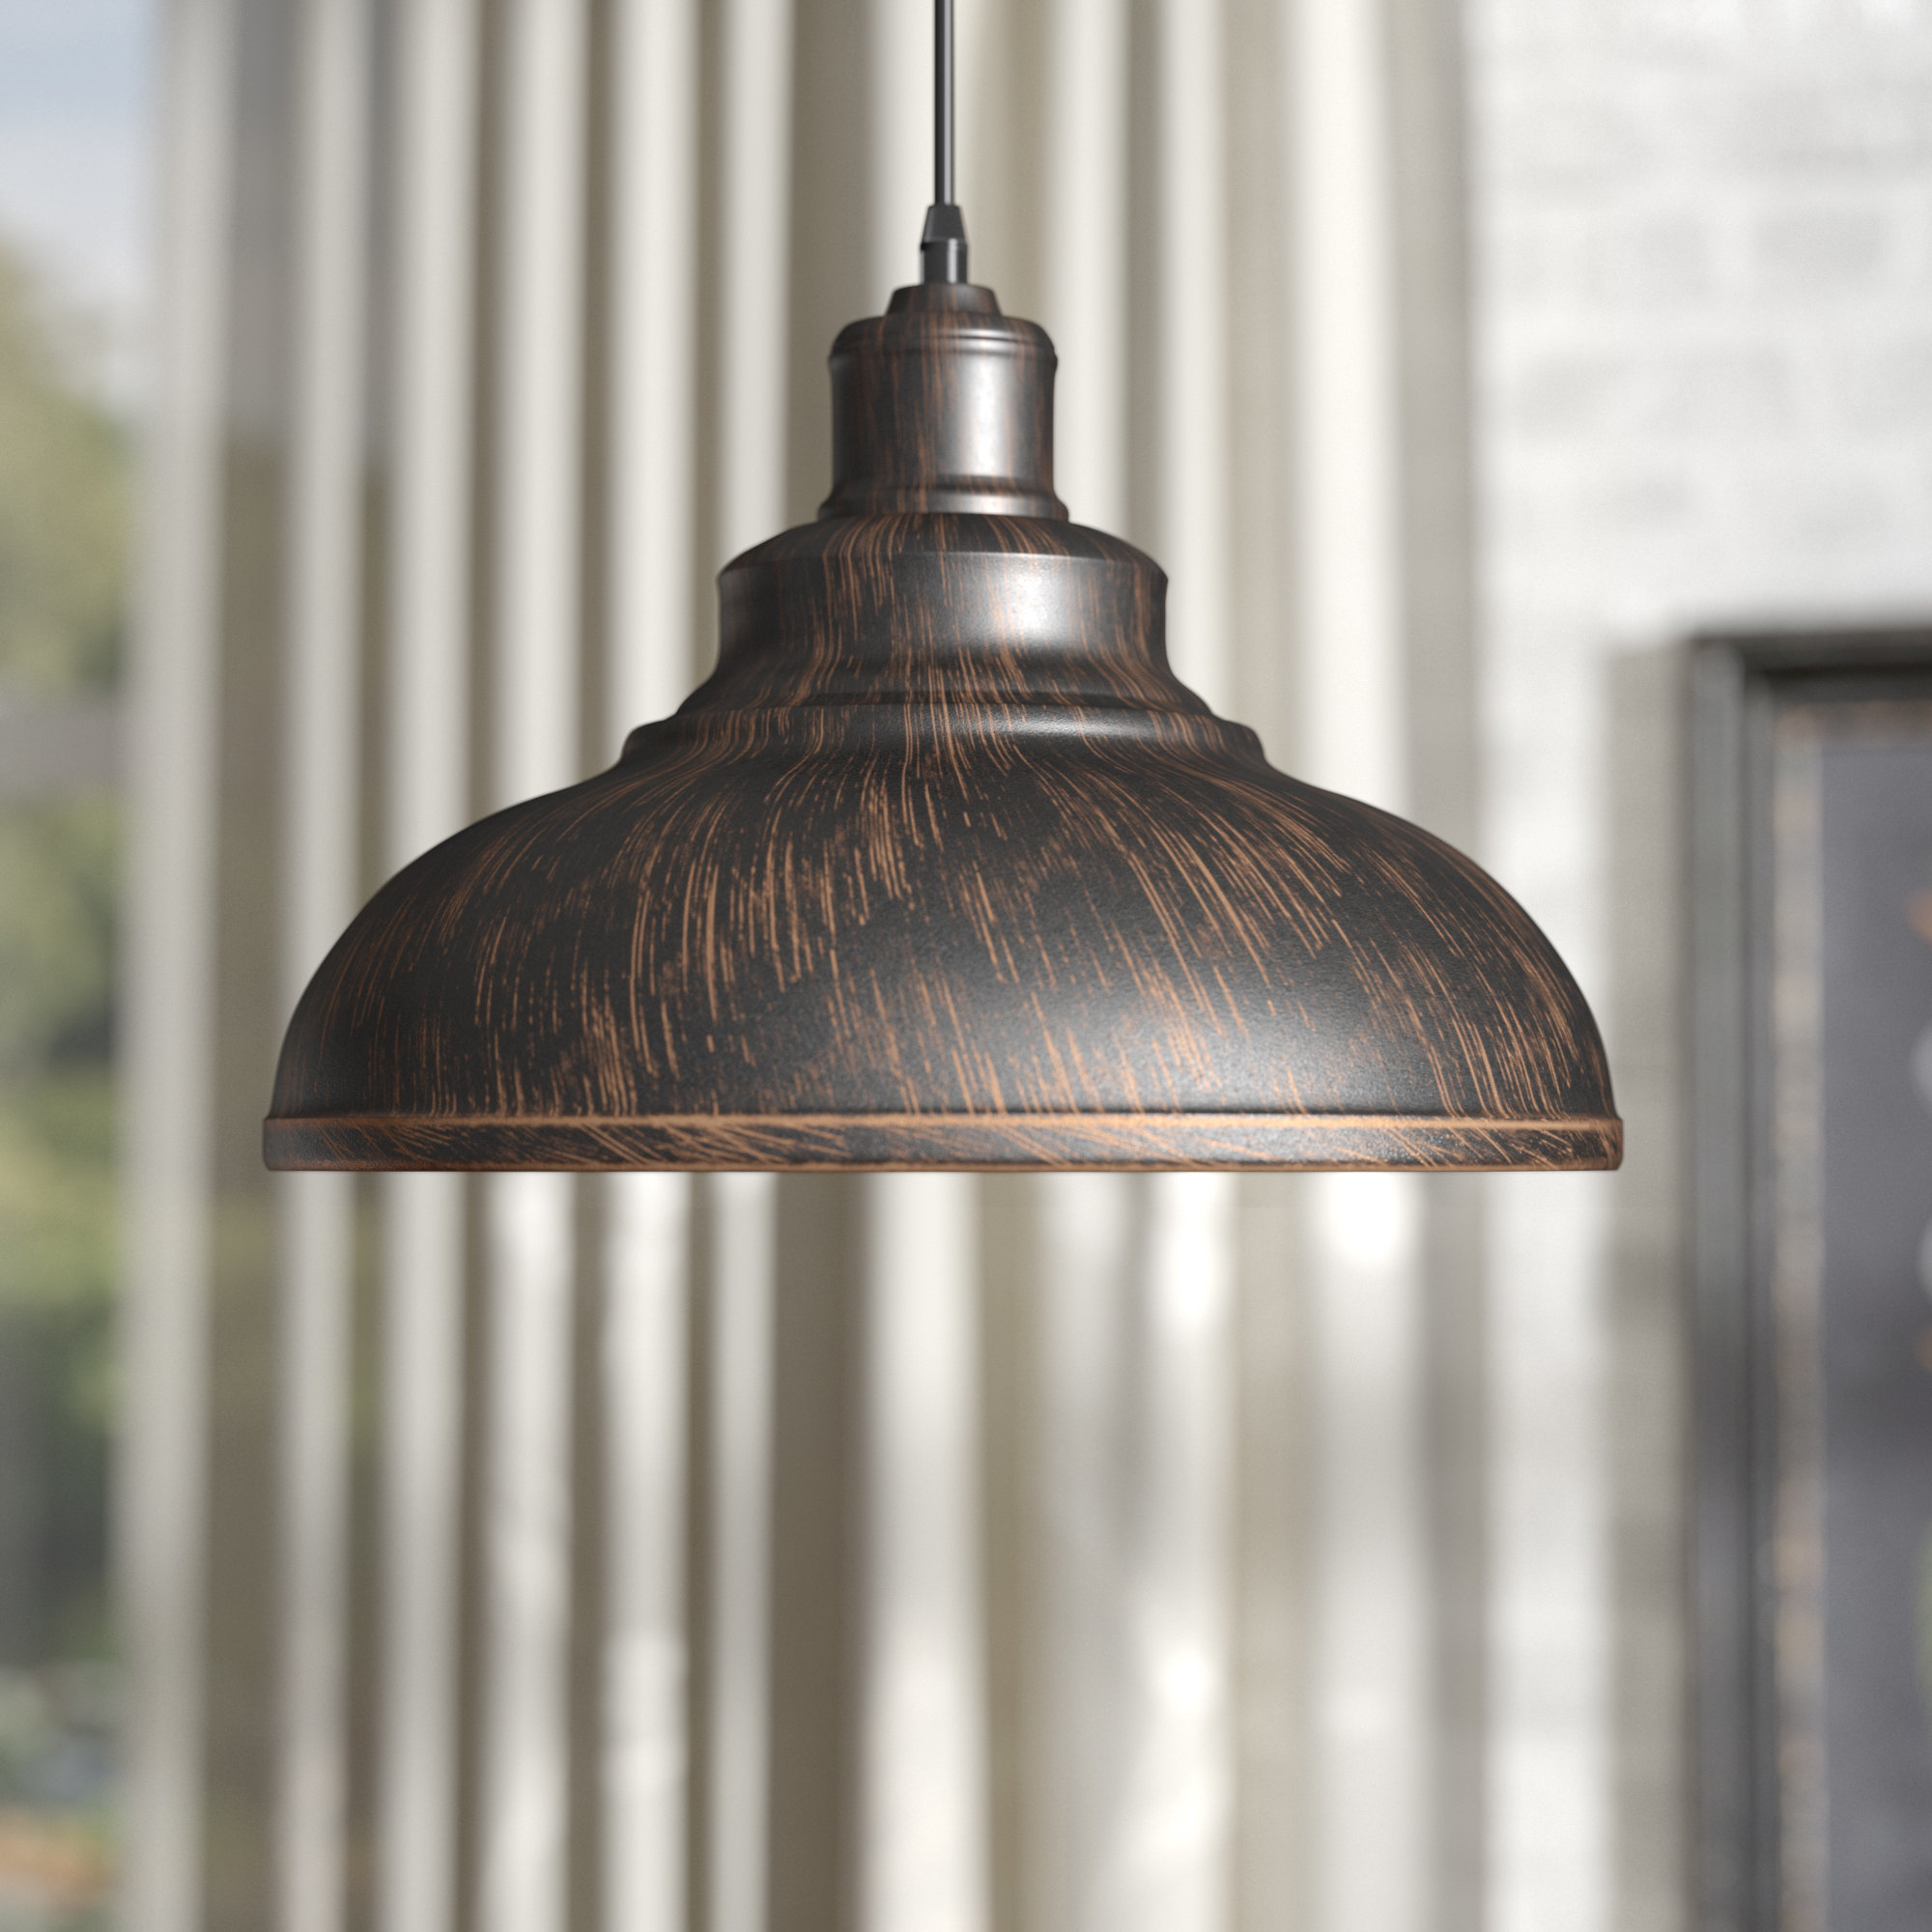 Abordale 1 Light Single Dome Pendants Throughout Most Current Estella 1 Light Dome Pendant (View 7 of 25)